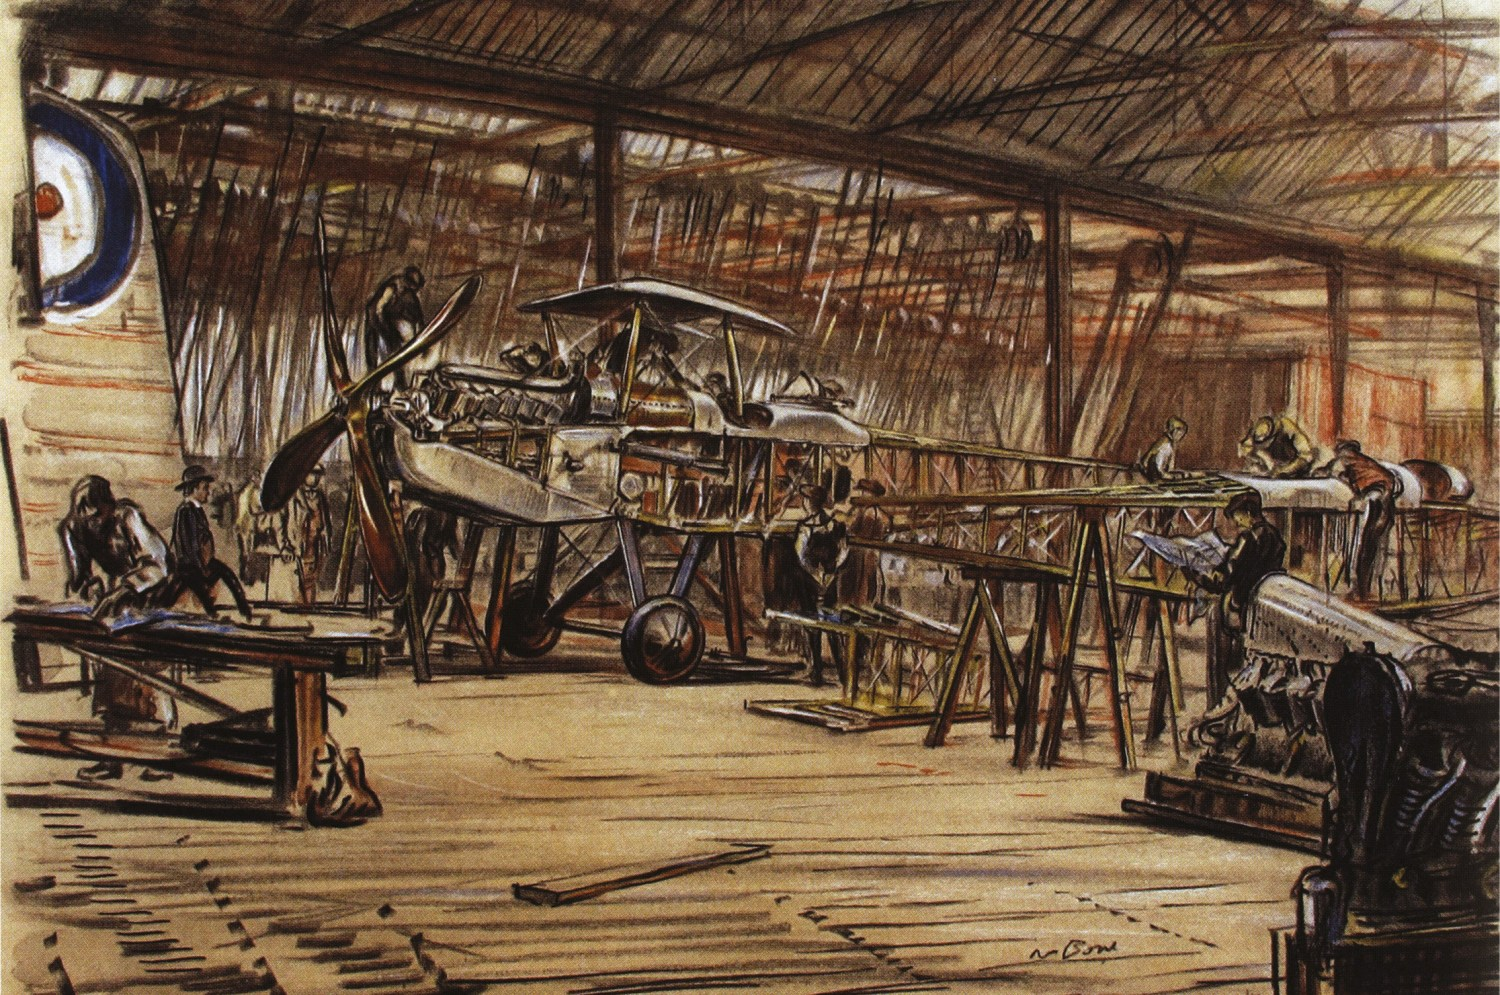 The Coventry Ordnance Works in 1917. This contemporary painting by artist Muirhead Bone underlines the workshop nature of aircraft production during the First World War.